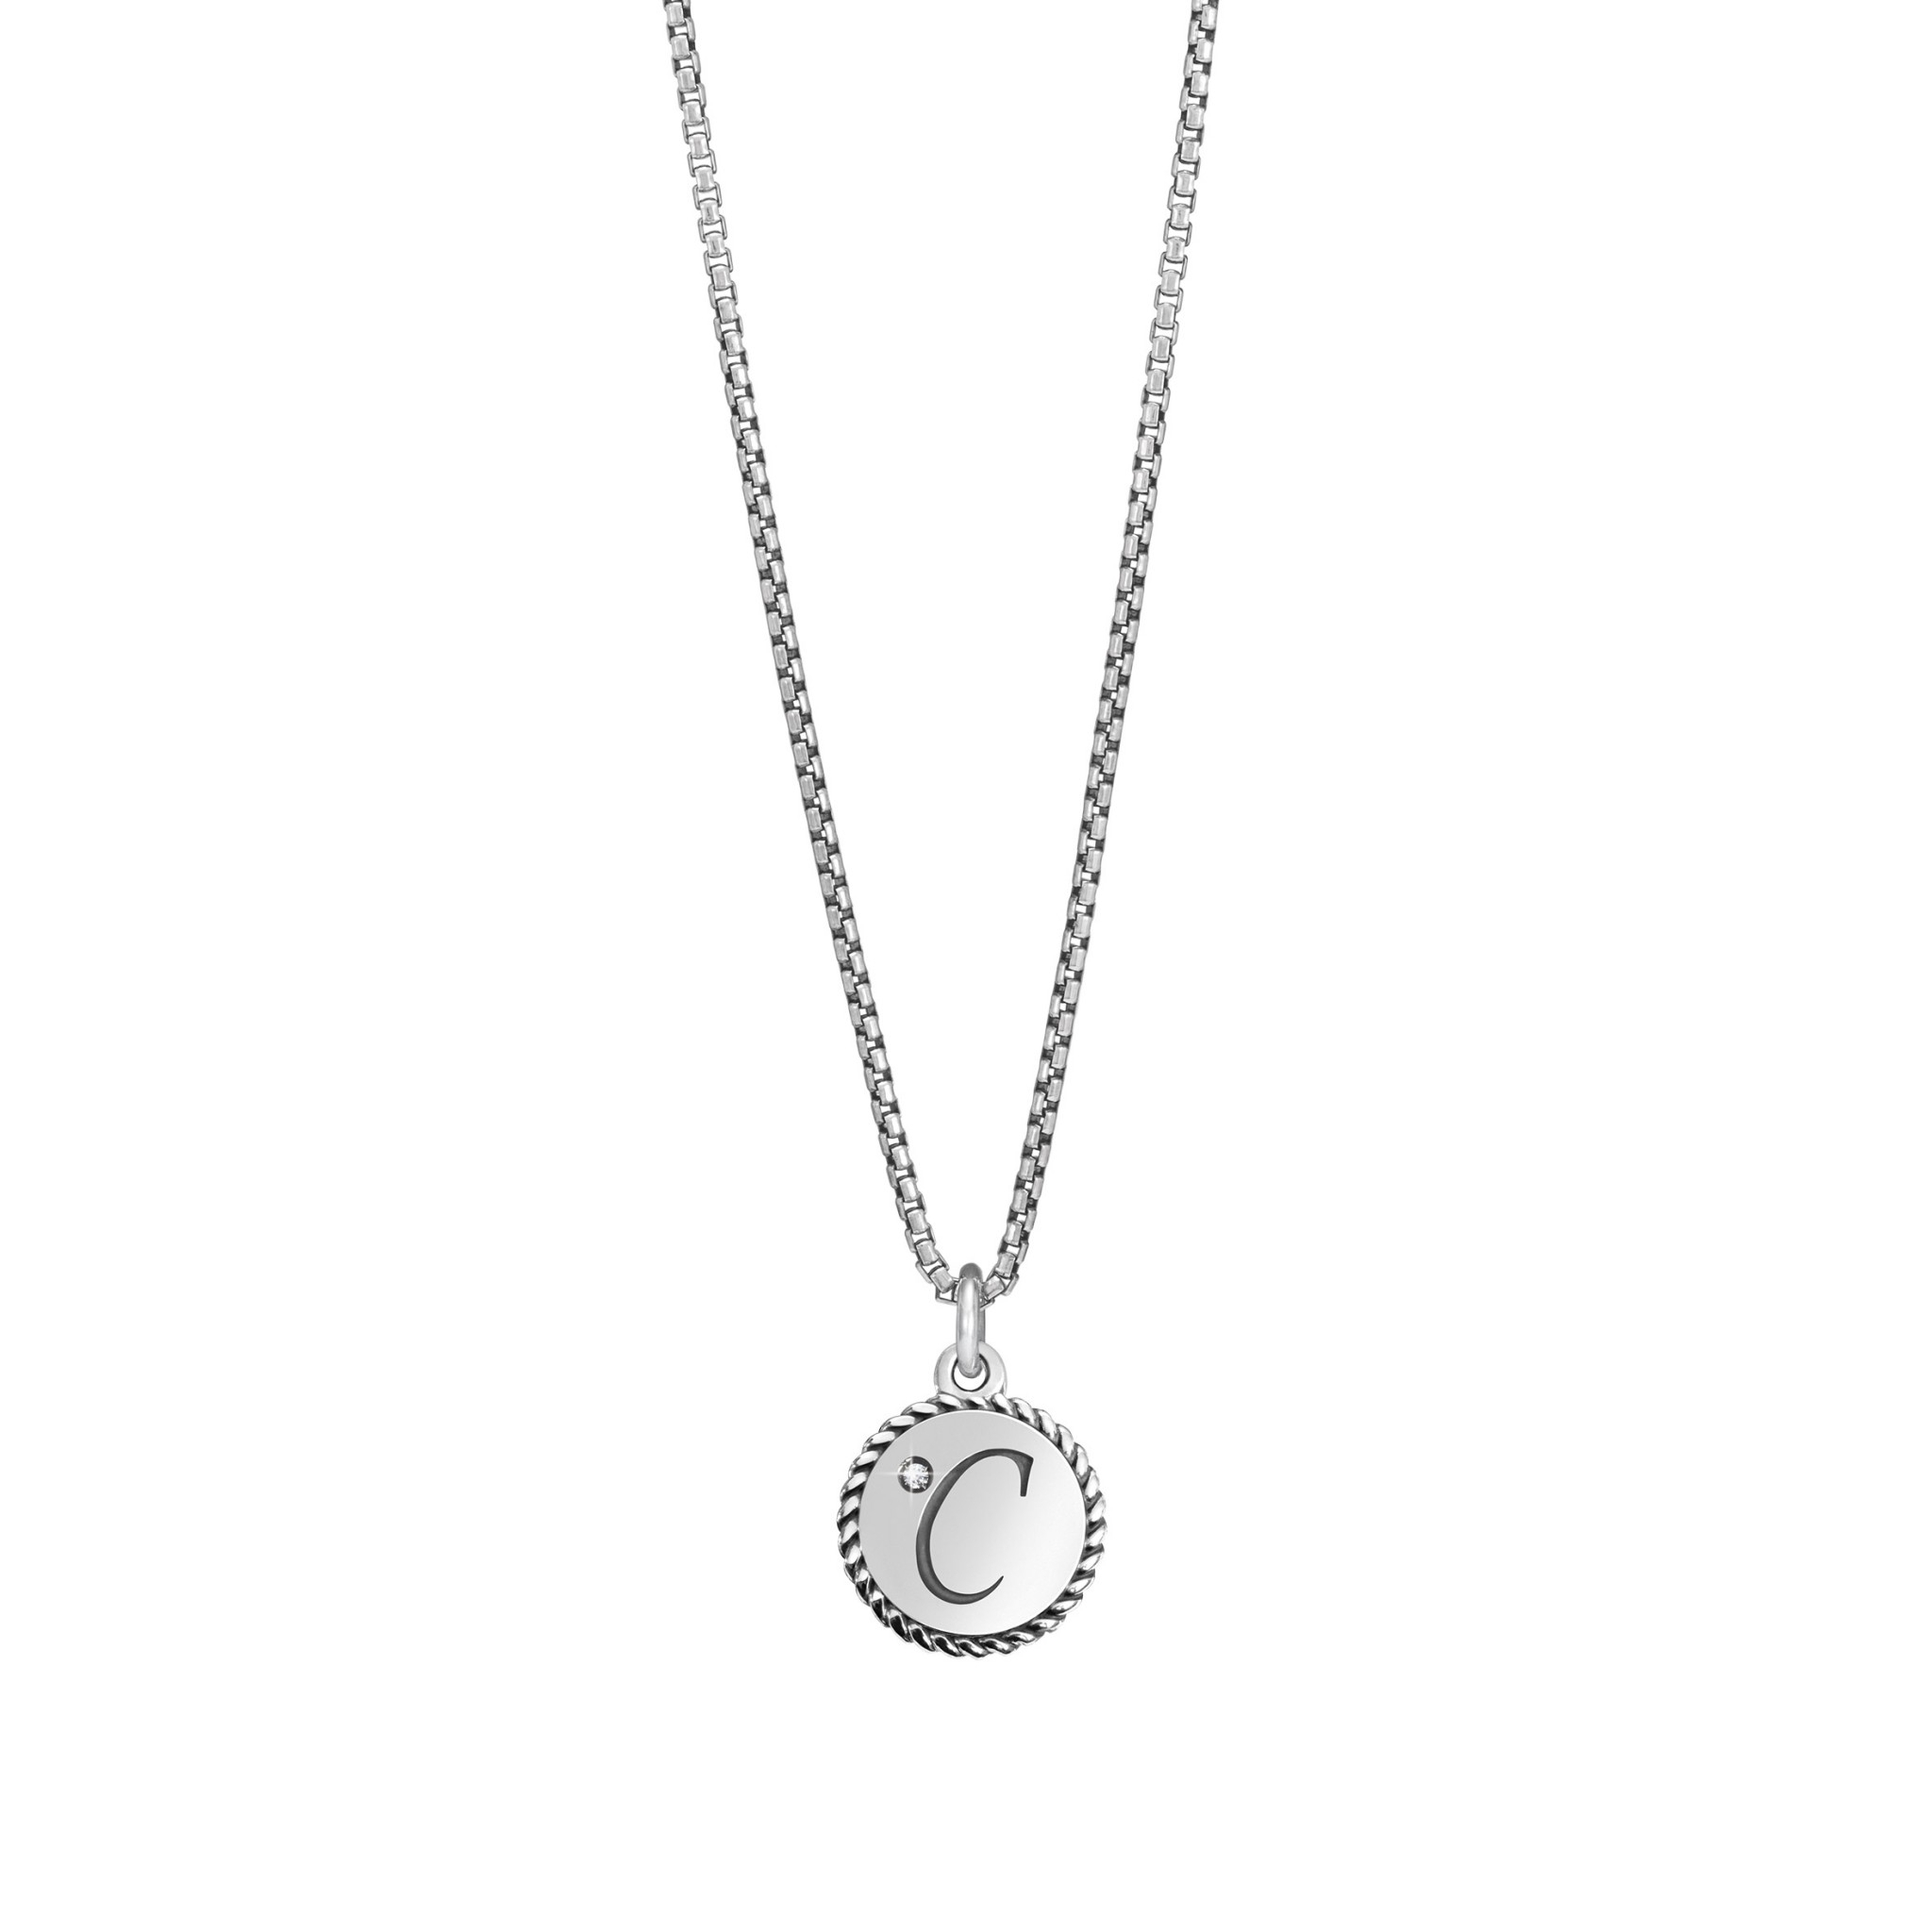 Necklace With Letter C In Silver And Gemstone For Most Recent Letter M Alphabet Locket Element Necklaces (Gallery 7 of 25)